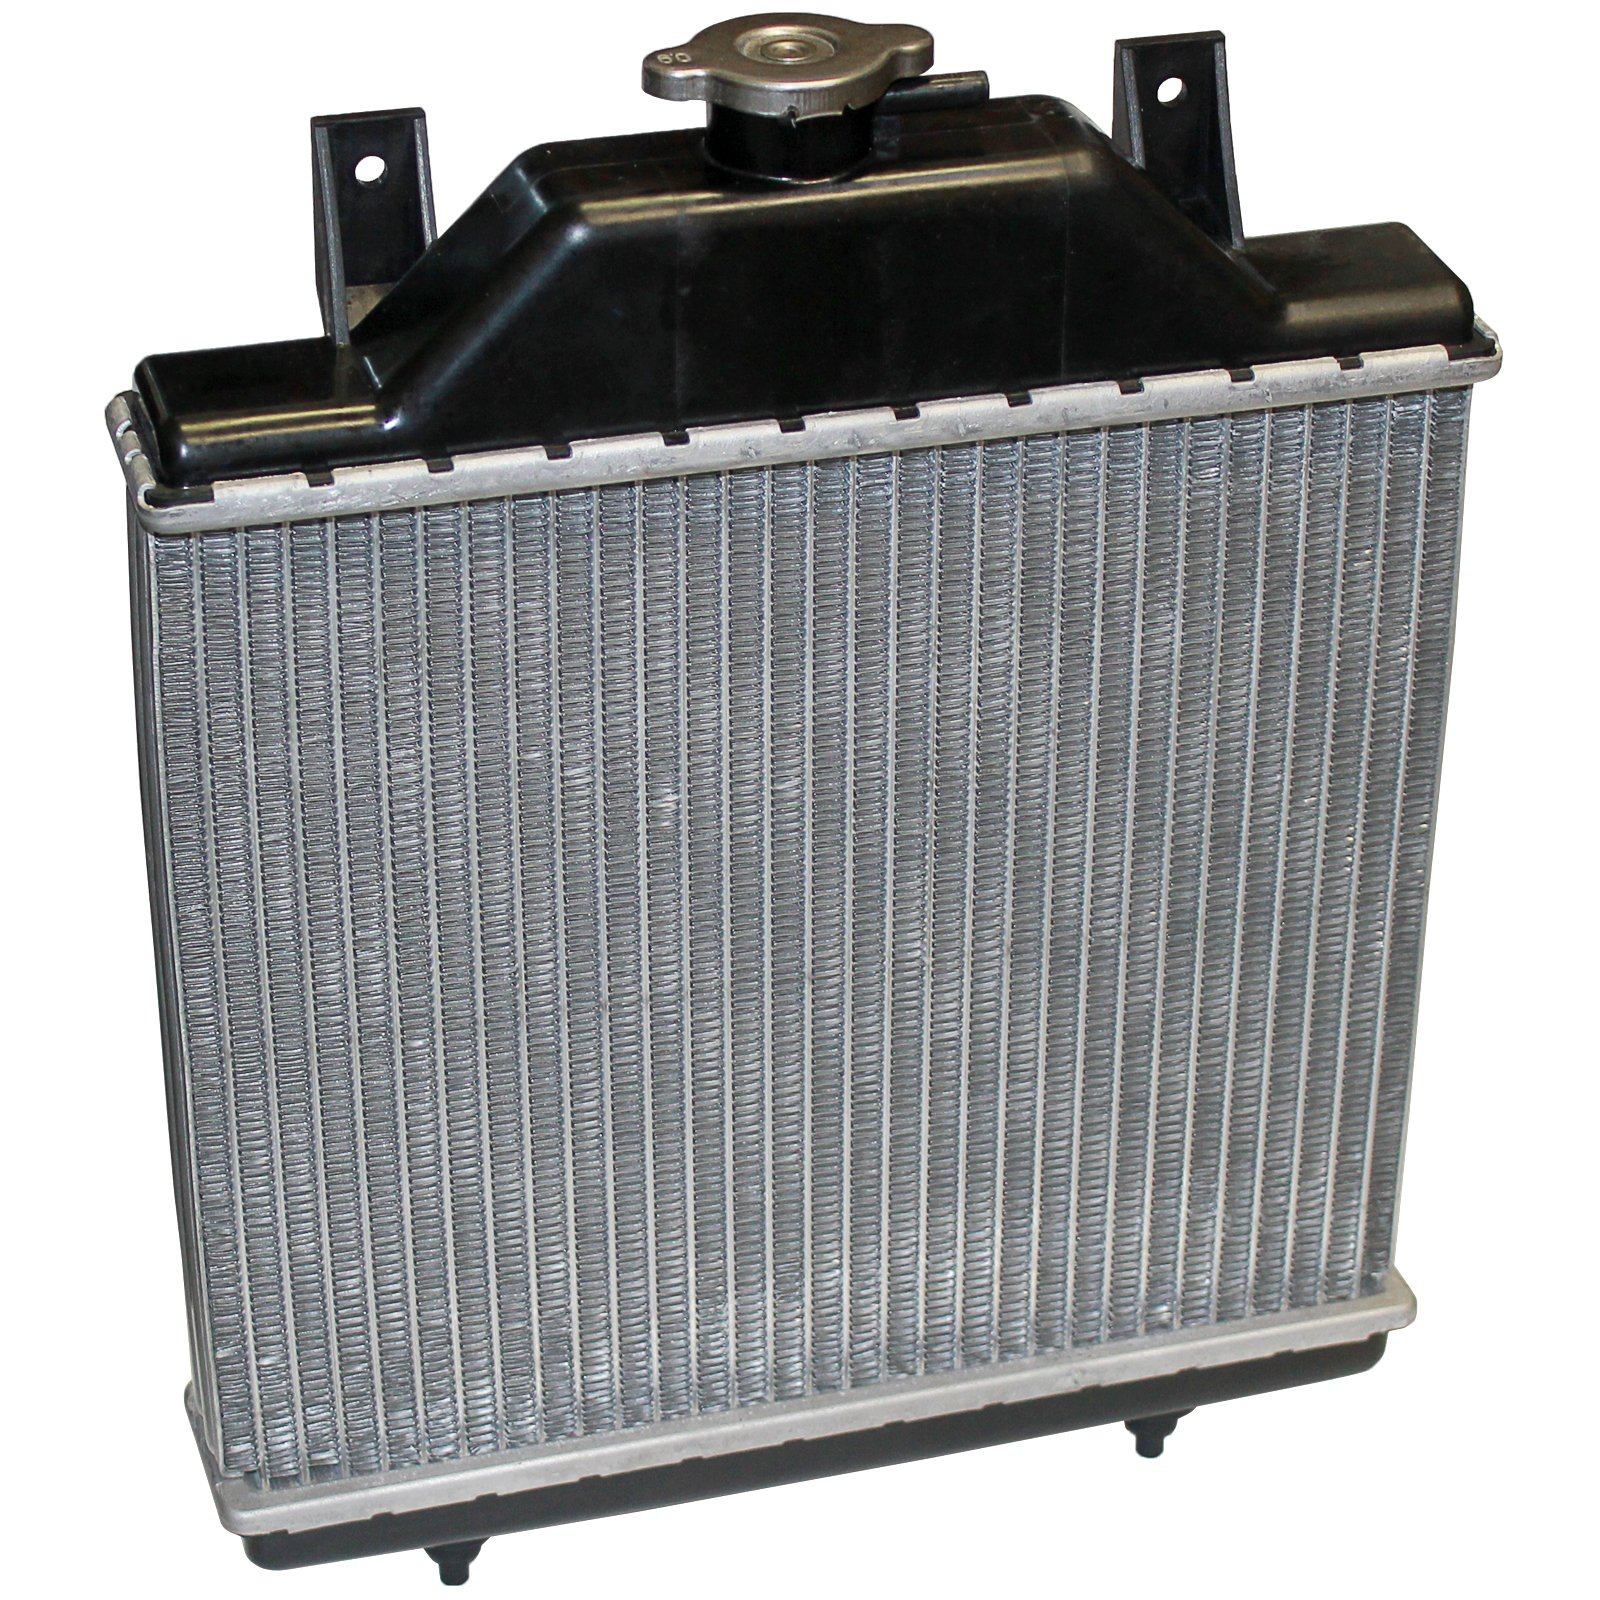 Caltric RADIATOR Fits POLARIS SWEDISH SPORTSMAN 500 1996-1998